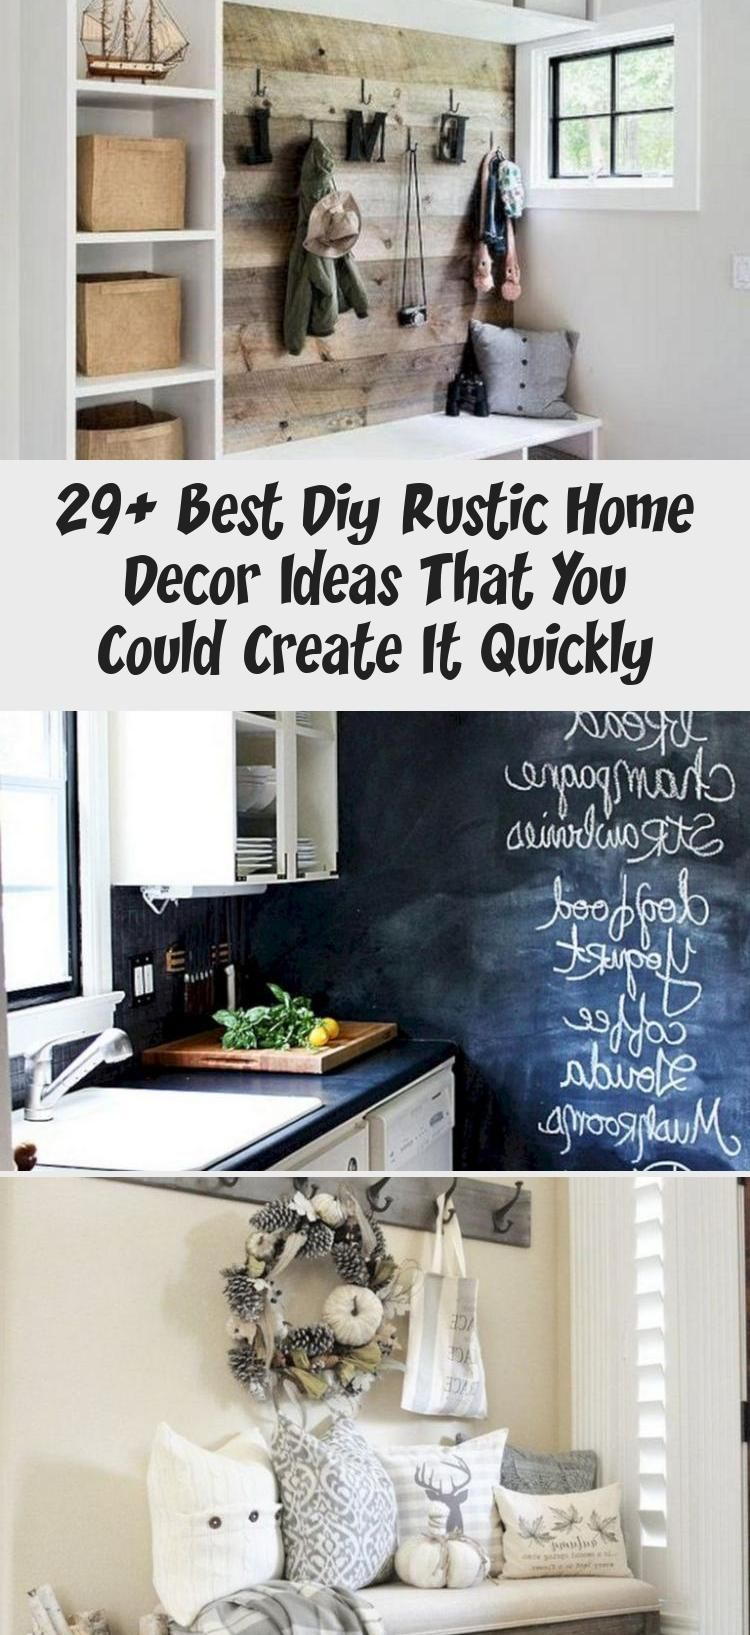 29 BEST DIY RUSTIC HOME DECOR IDEAS THAT YOU COULD CREATE